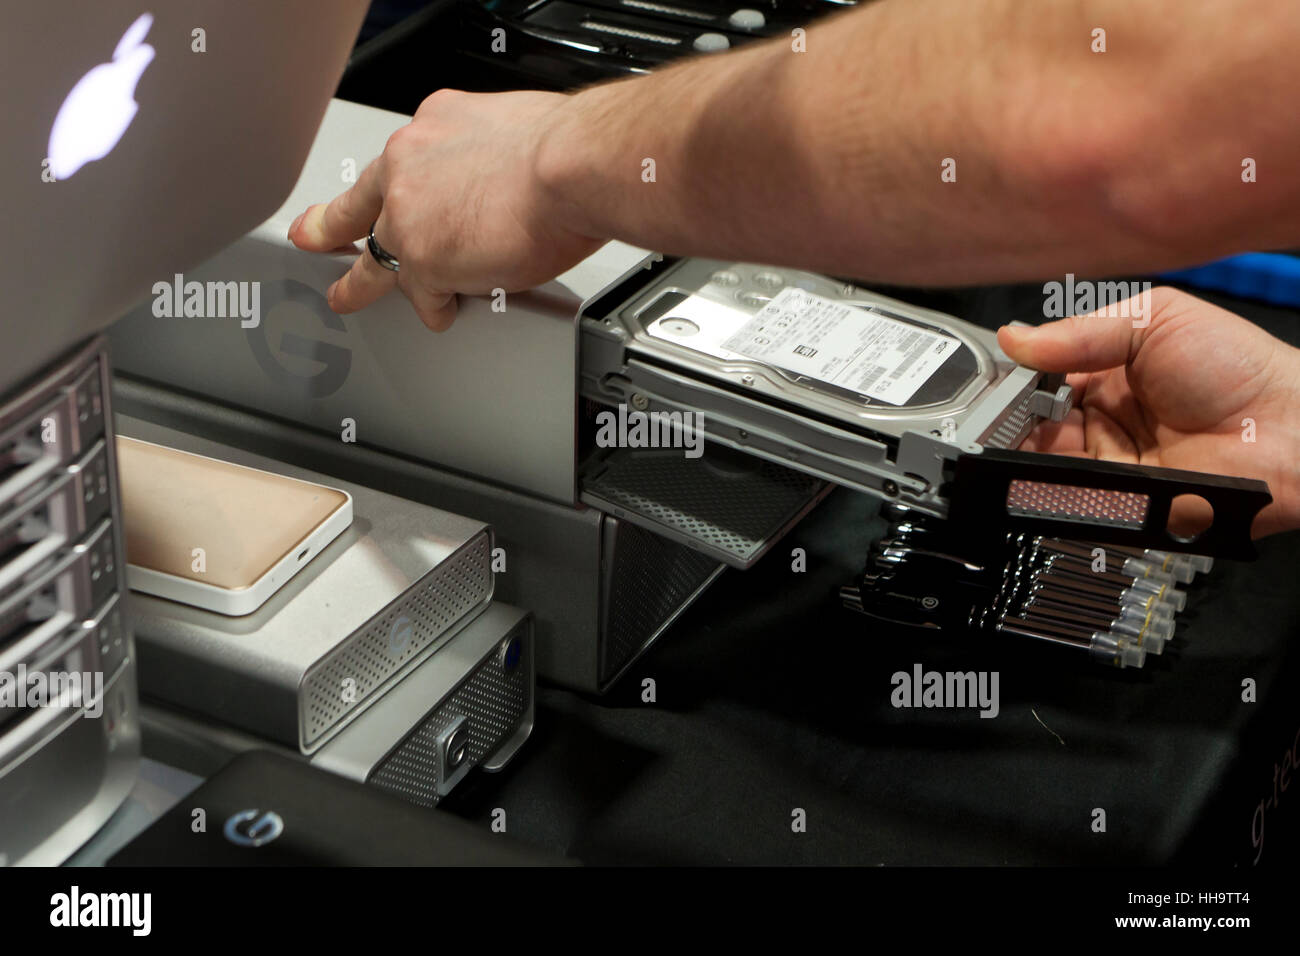 Man inserting hard drive into RAID Array - USA - Stock Image